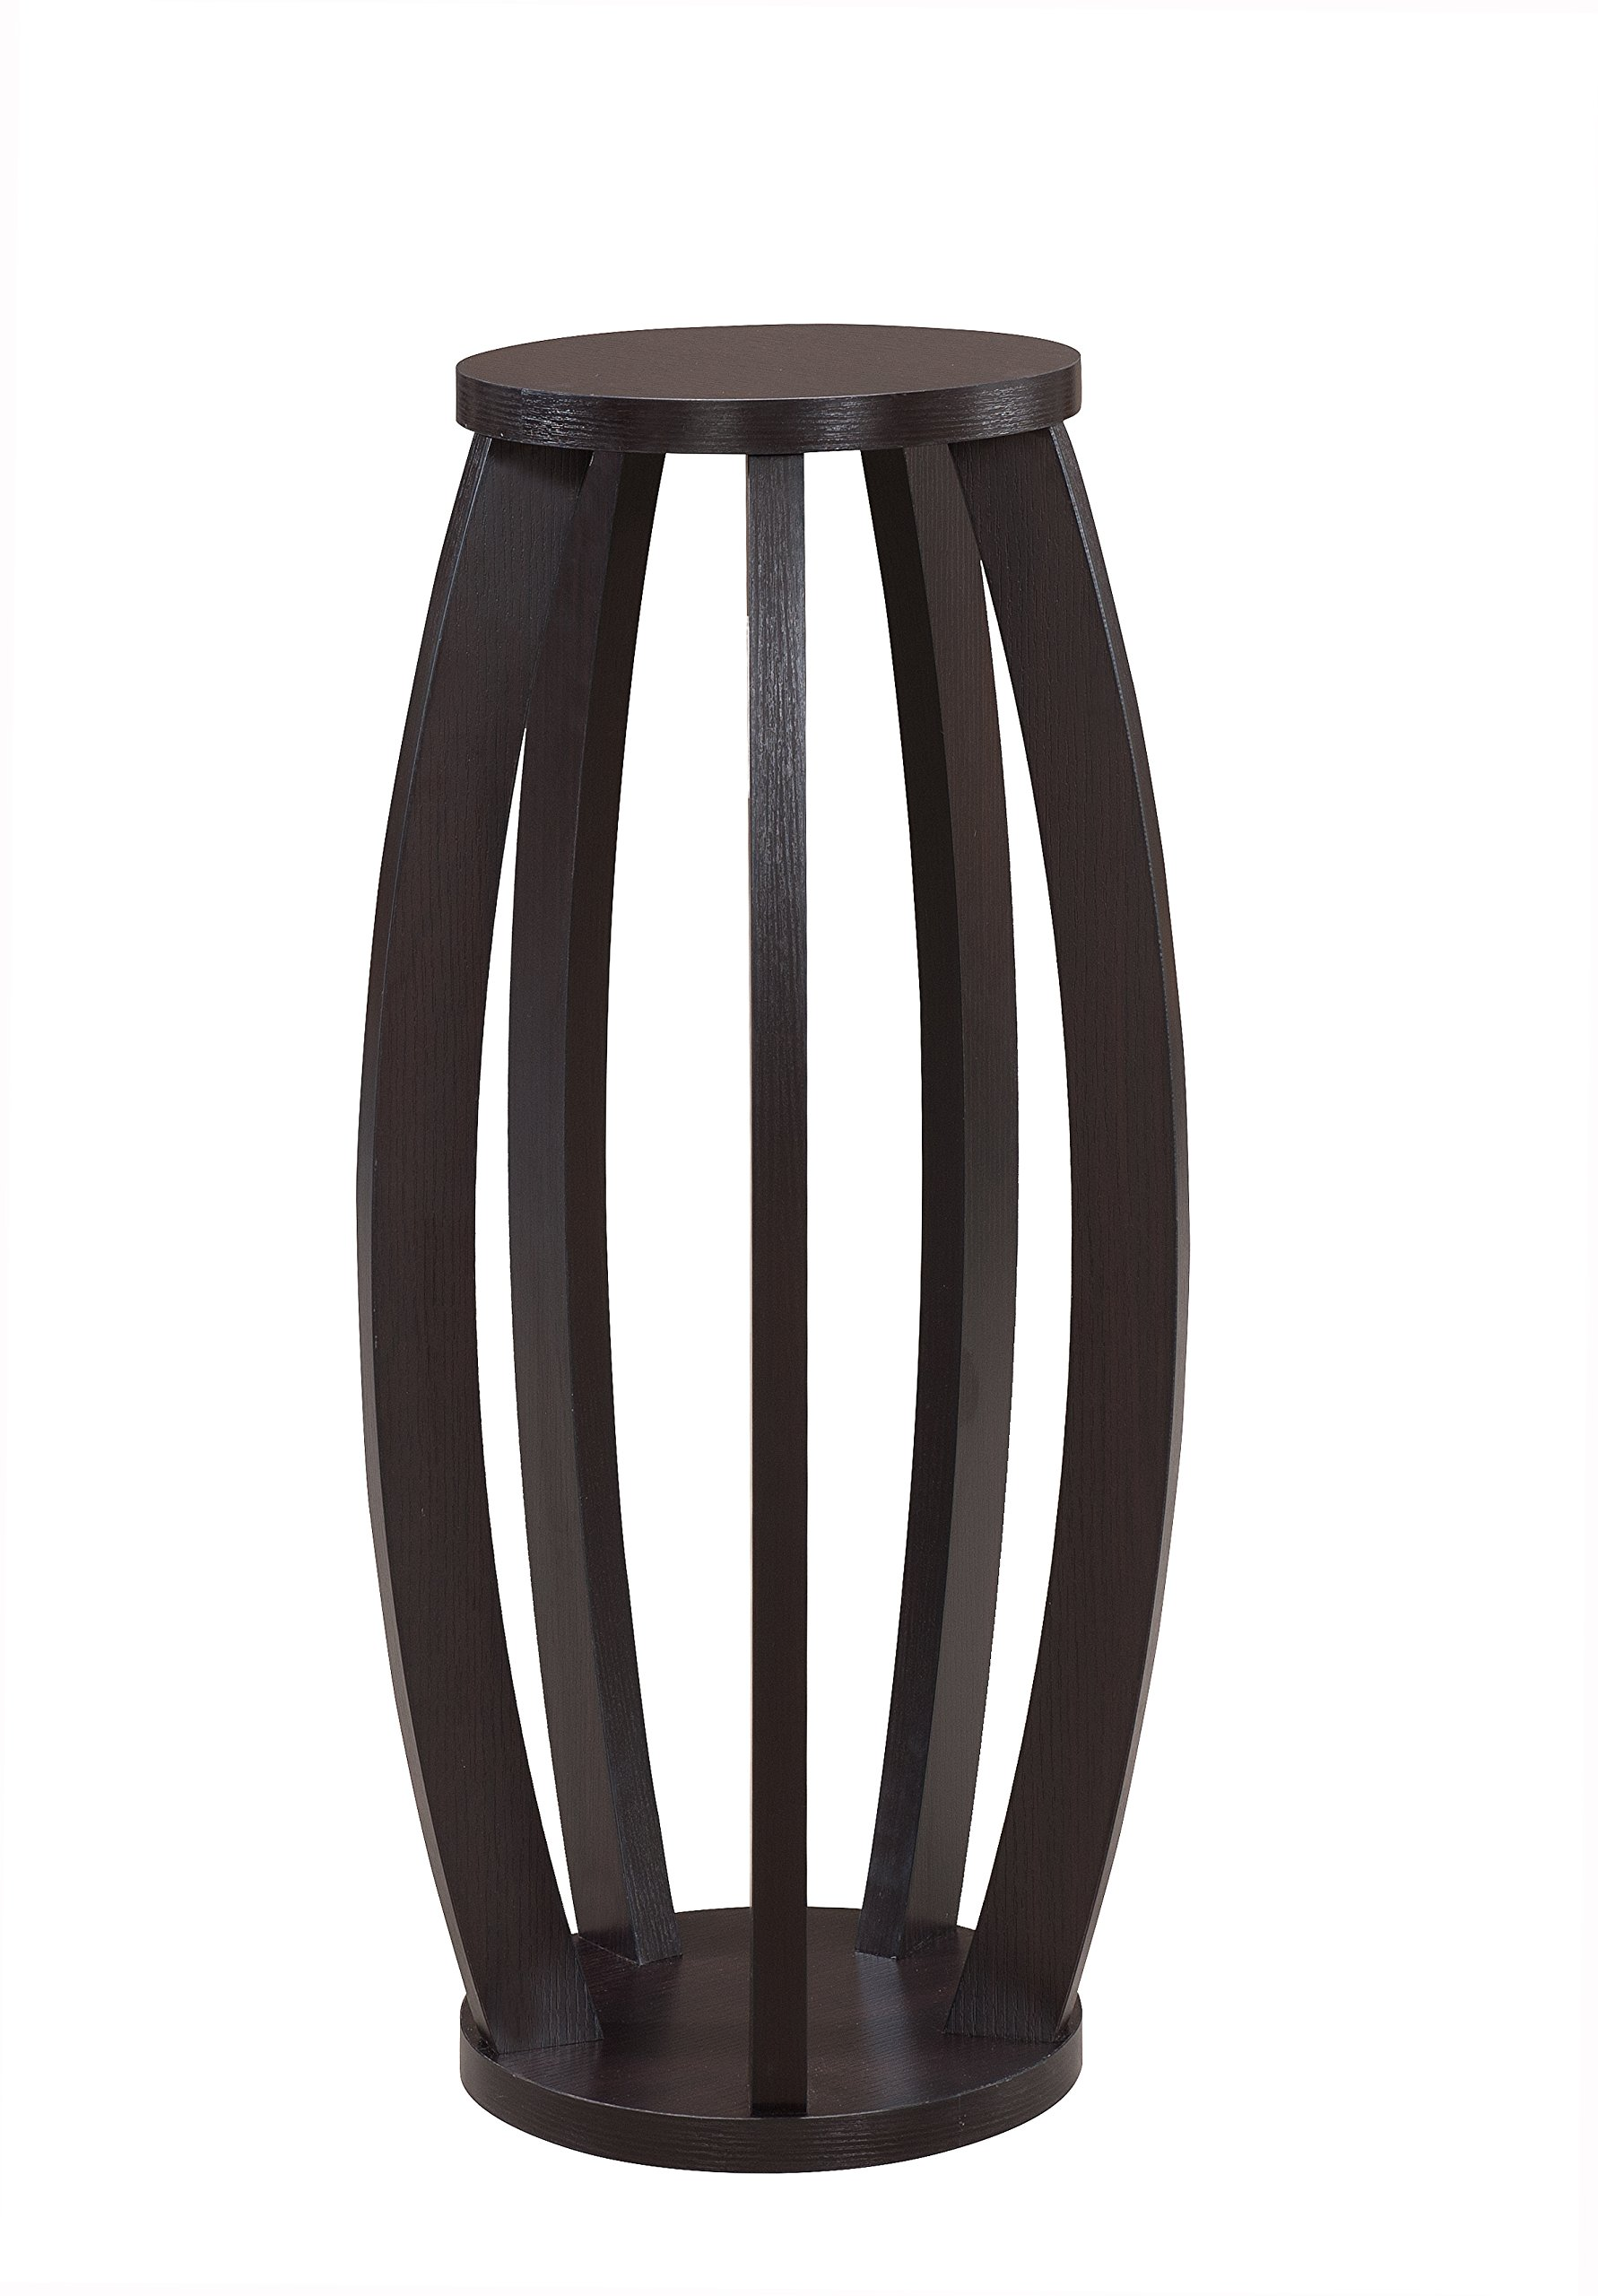 HOMES: Inside + Out ioHOMES Contemporary Ninsar Plant Stand, Cappuccino